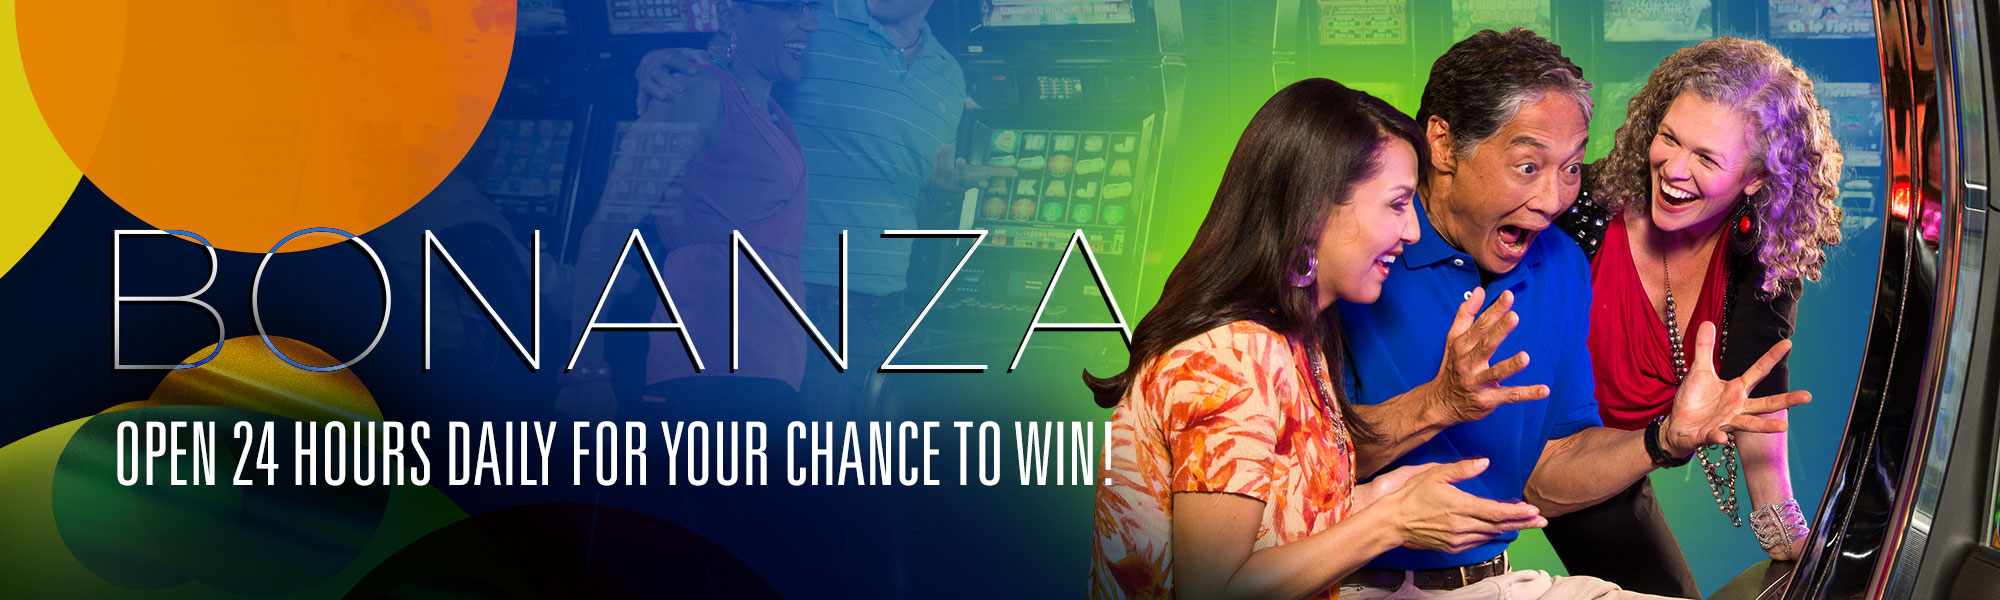 Bonanza - Open 24 hours daily for your chance to win!